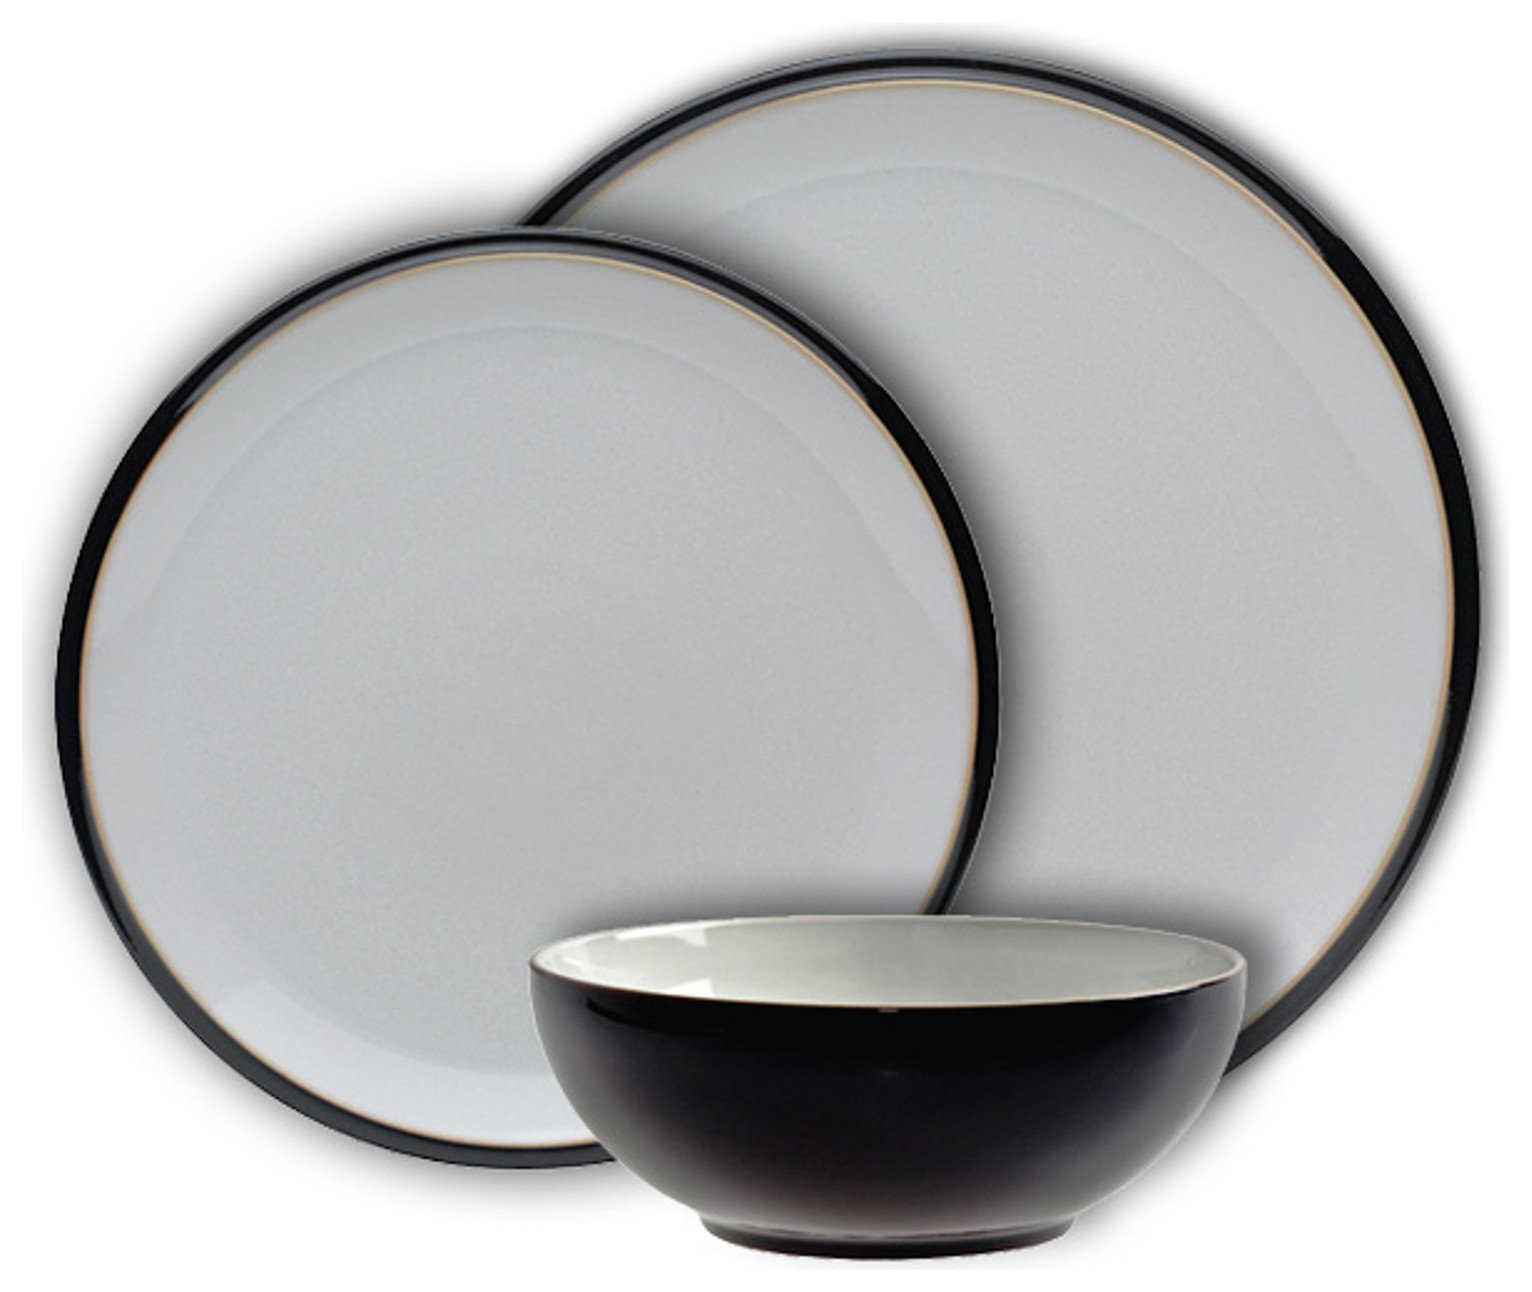 Image of Denby Everyday 12 Piece Dinner Set - Black Pepper